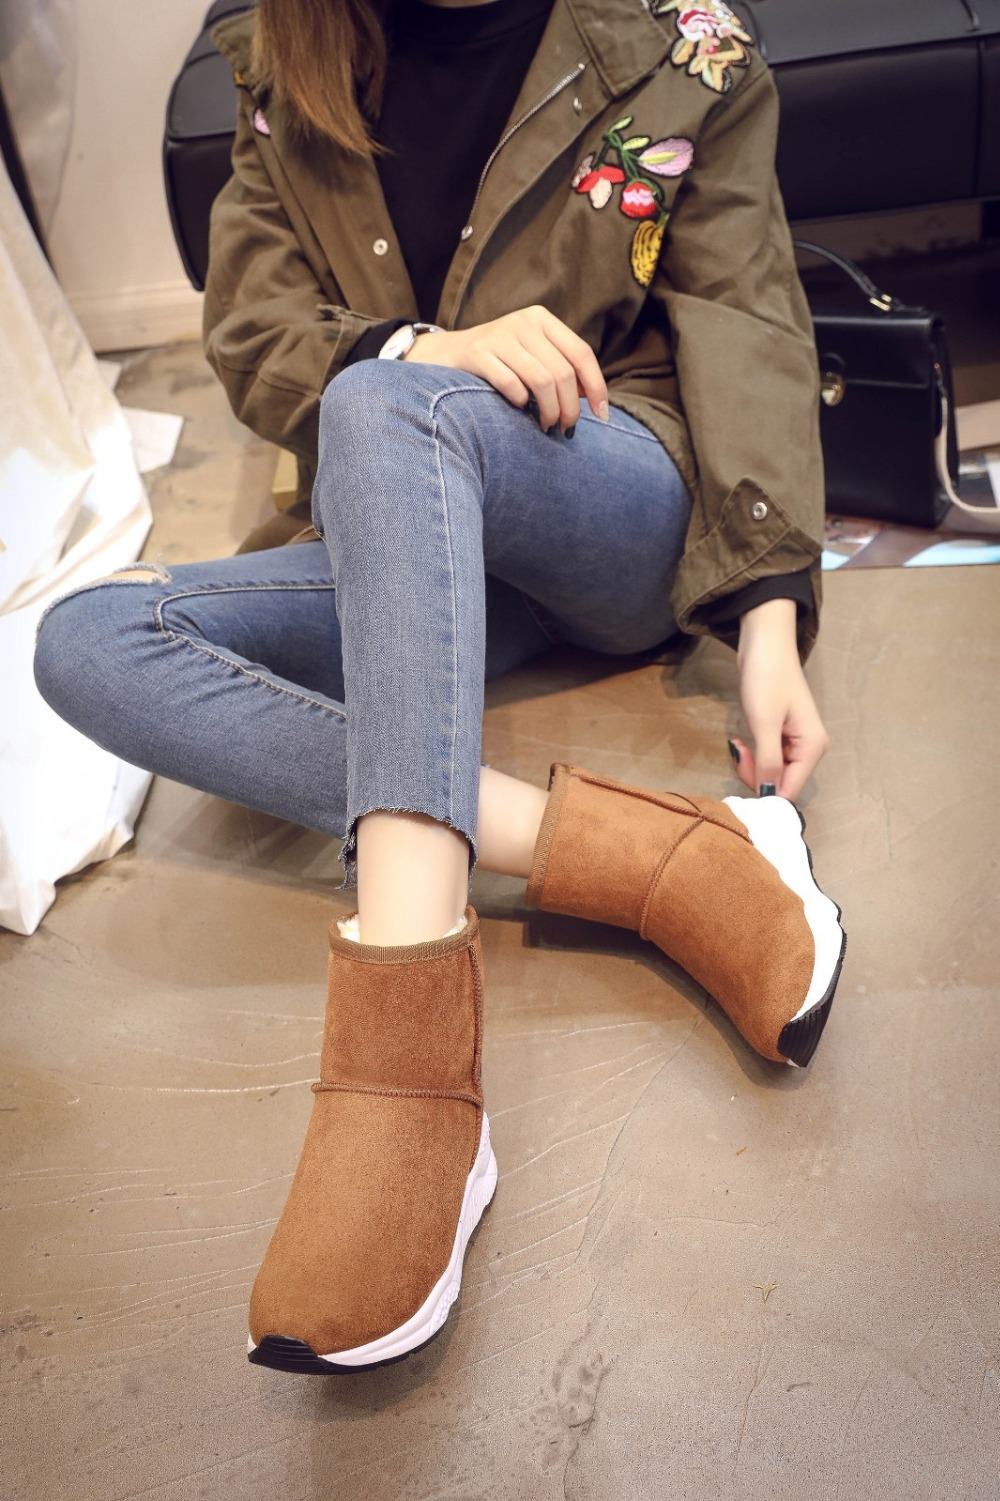 Winter Snow Boots Women Casual Shoes Slip On Warm Plush Women Ankle Boots Flat Heel Sport Ladies Shoes Booties Botas Mujer XZ82 (7)